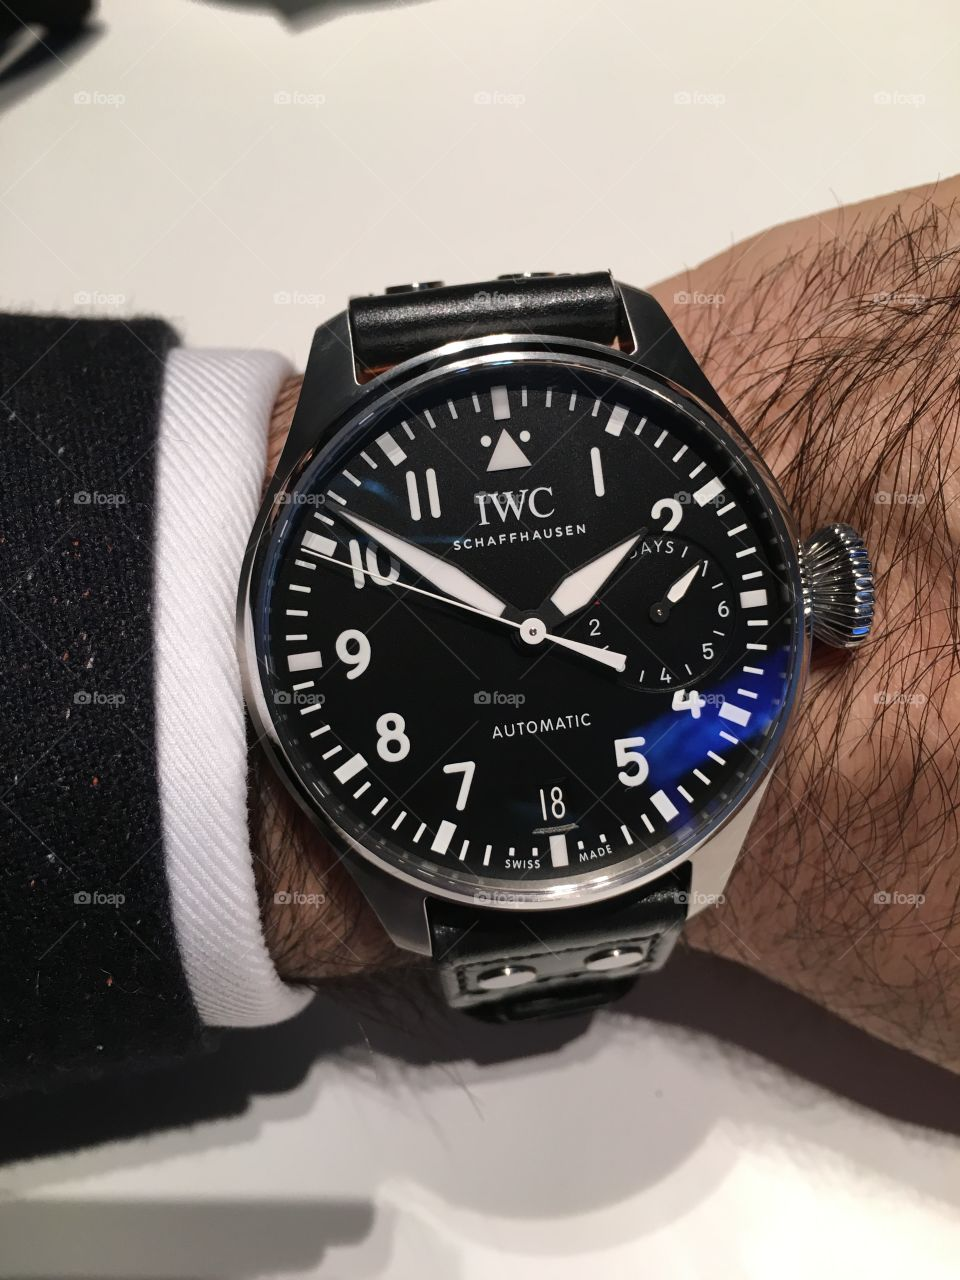 IWC Big Pilot watch on wrist